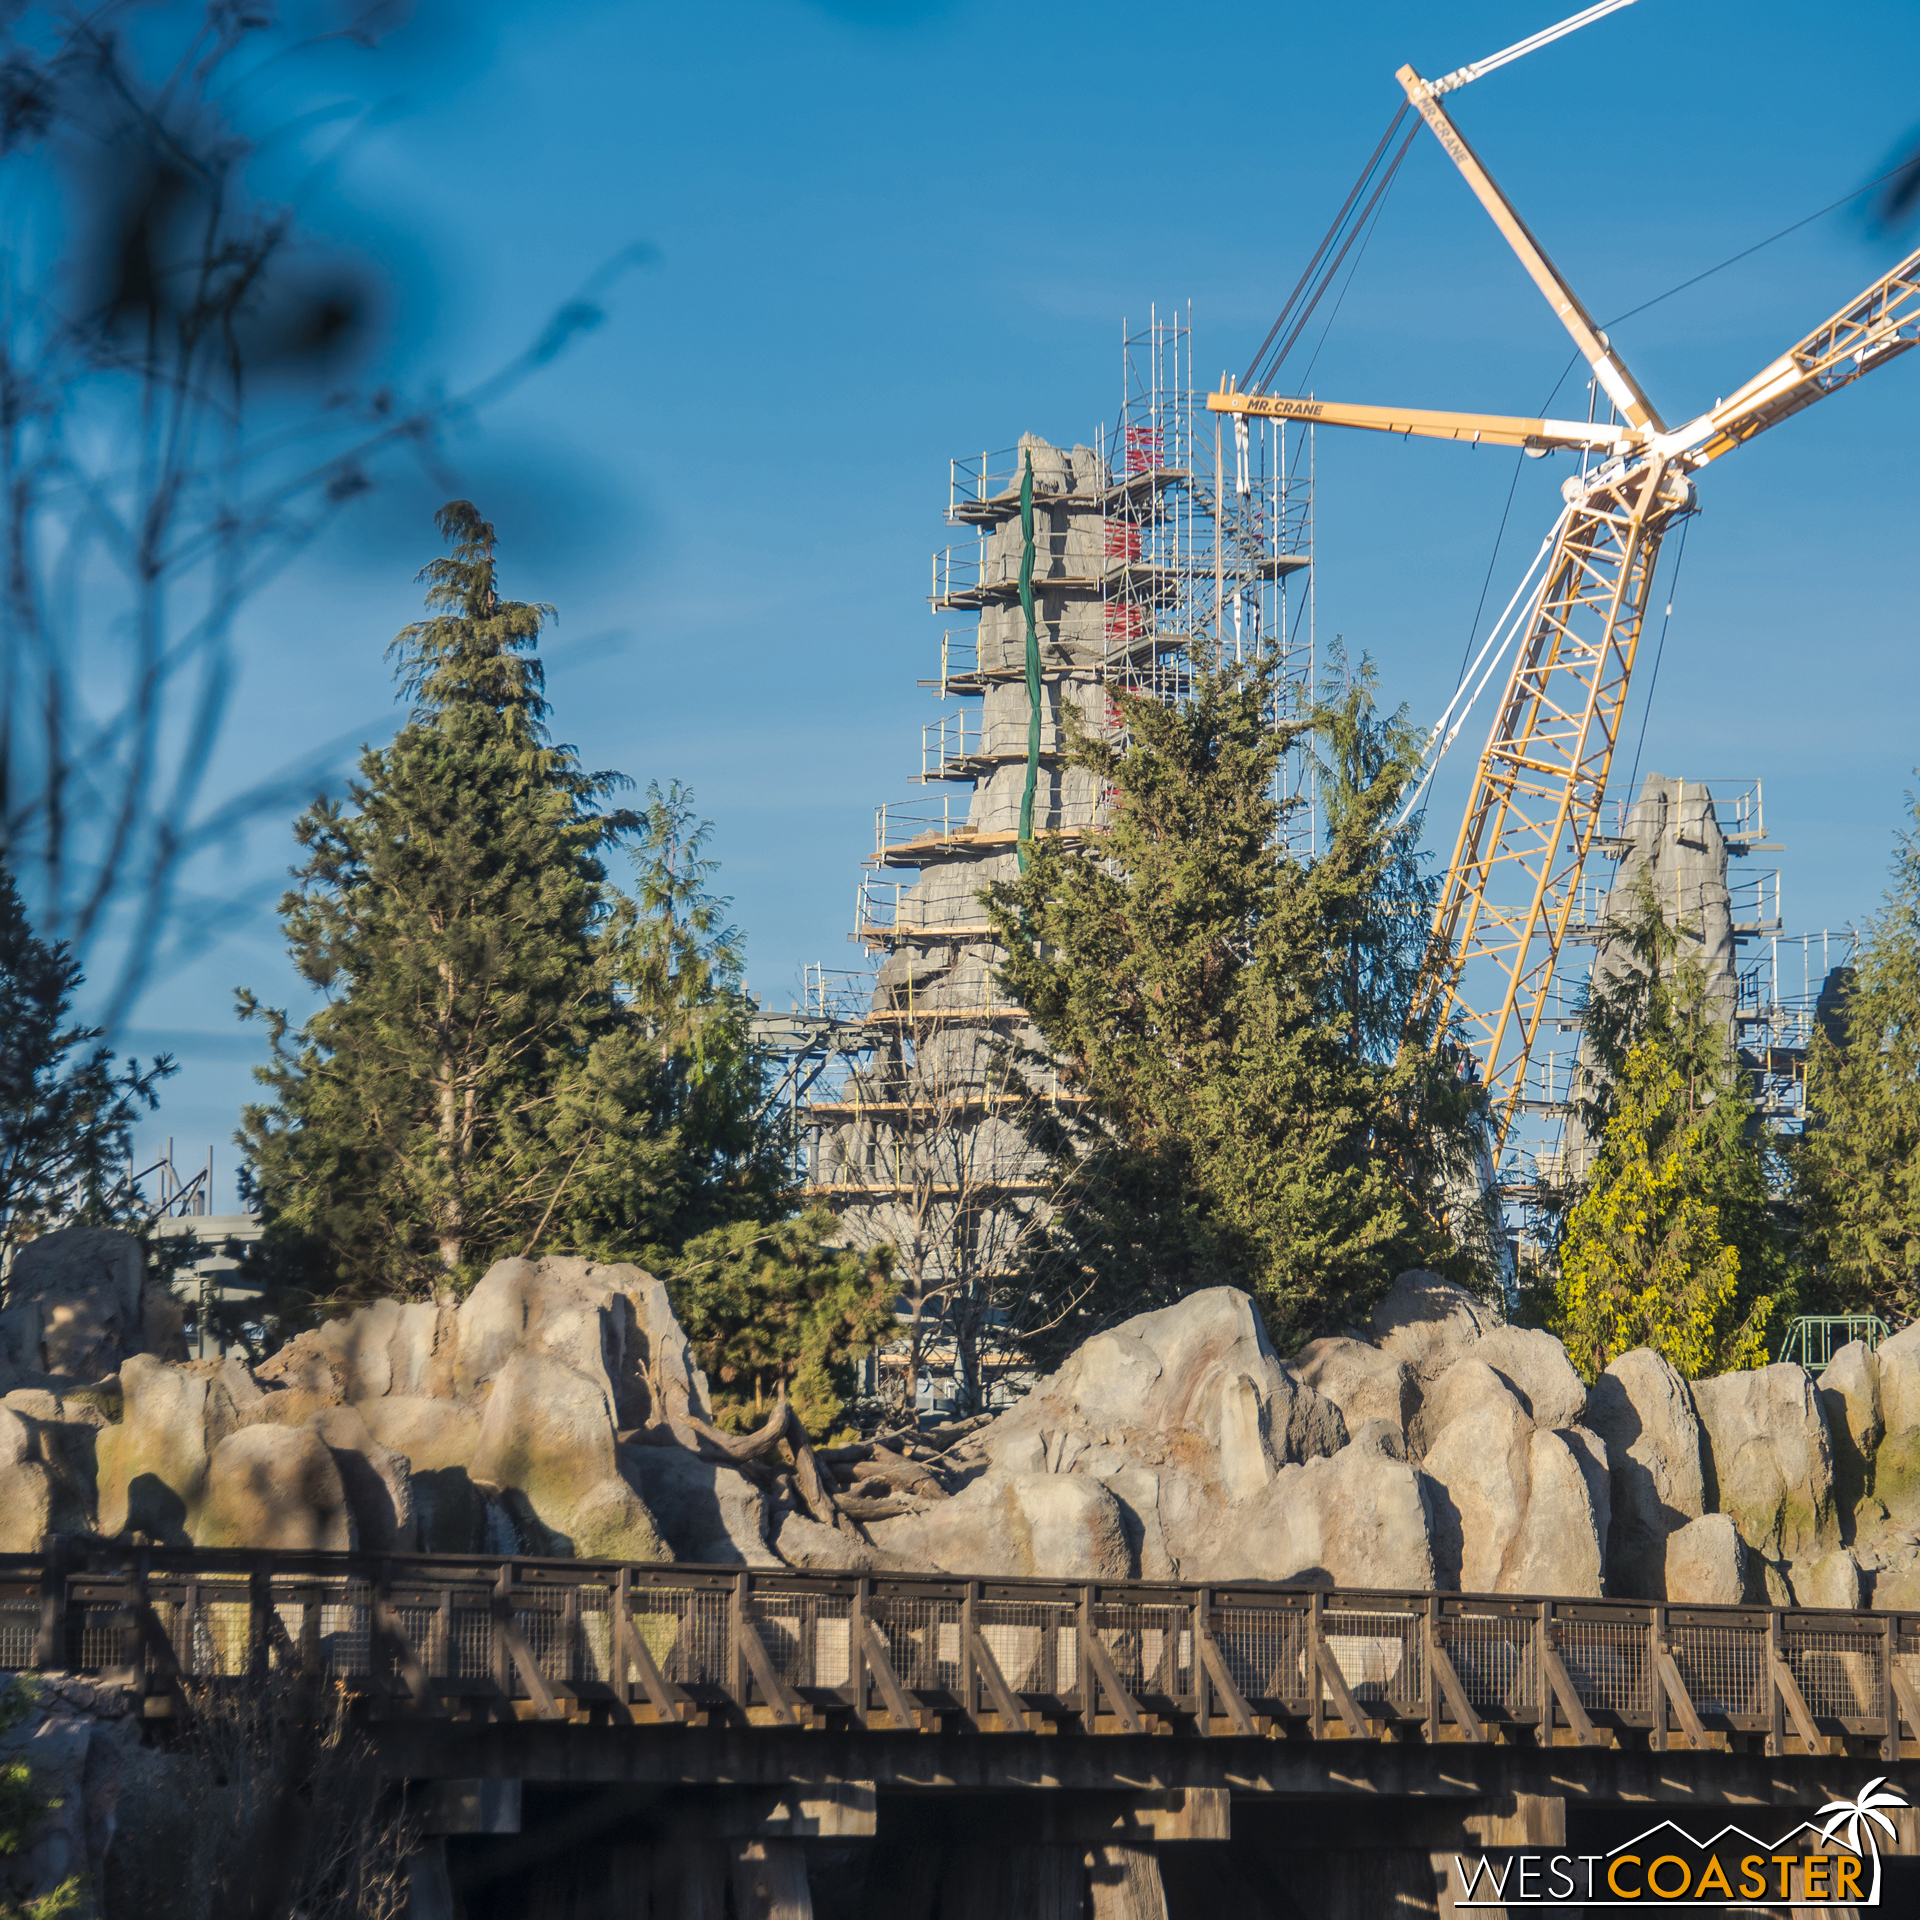 I still think they'll look quite nice and photogenic behind the Rivers of America.